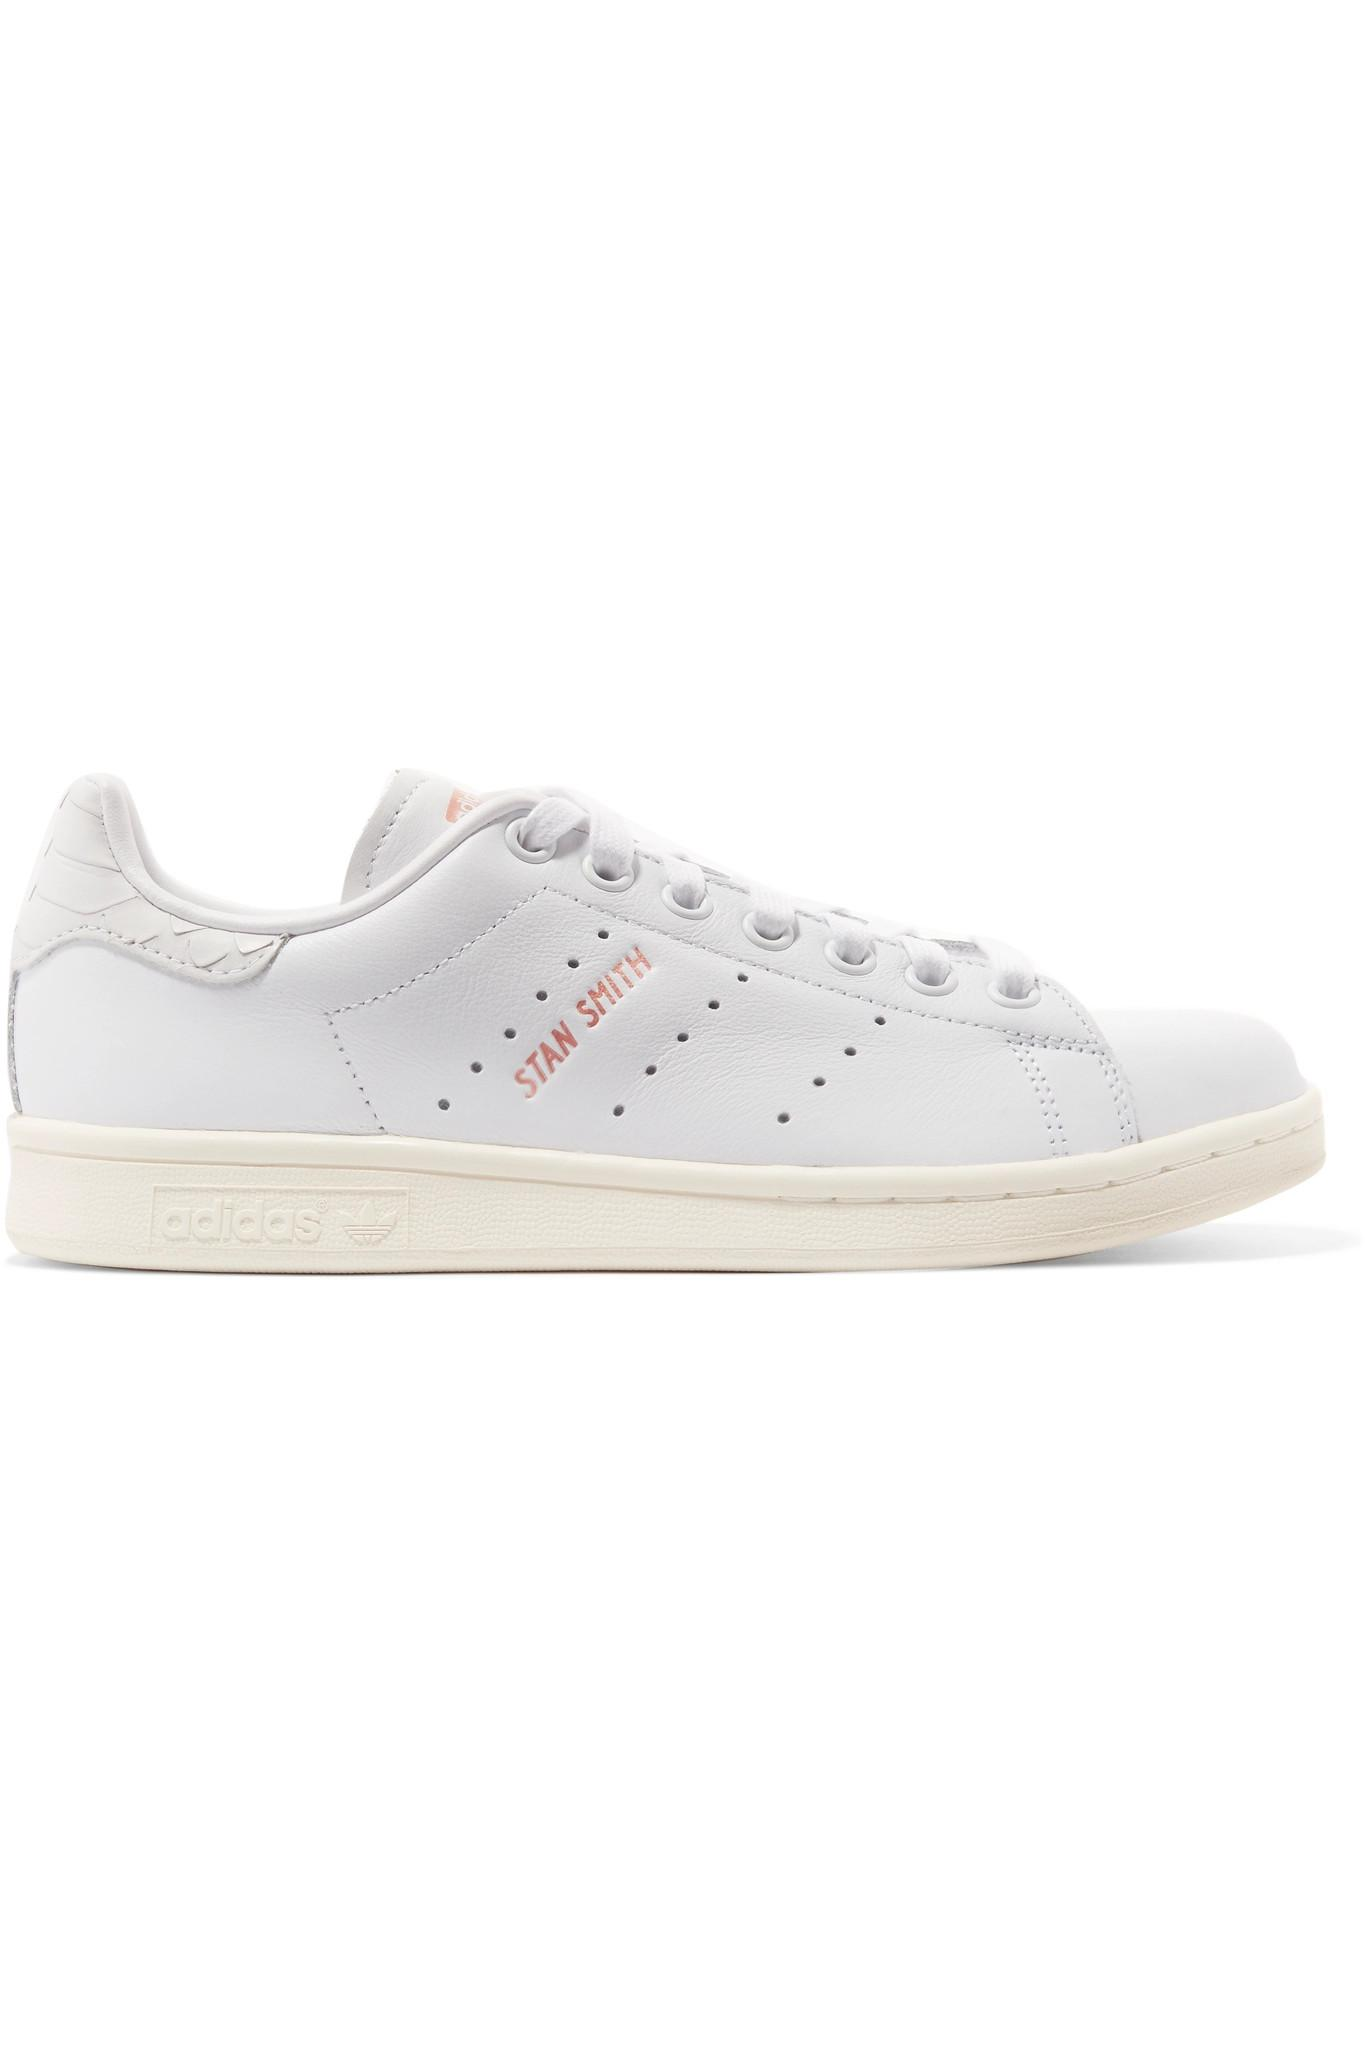 Continental 80 Grosgrain-trimmed Leather Sneakers - White adidas Originals kbIQttlPN7